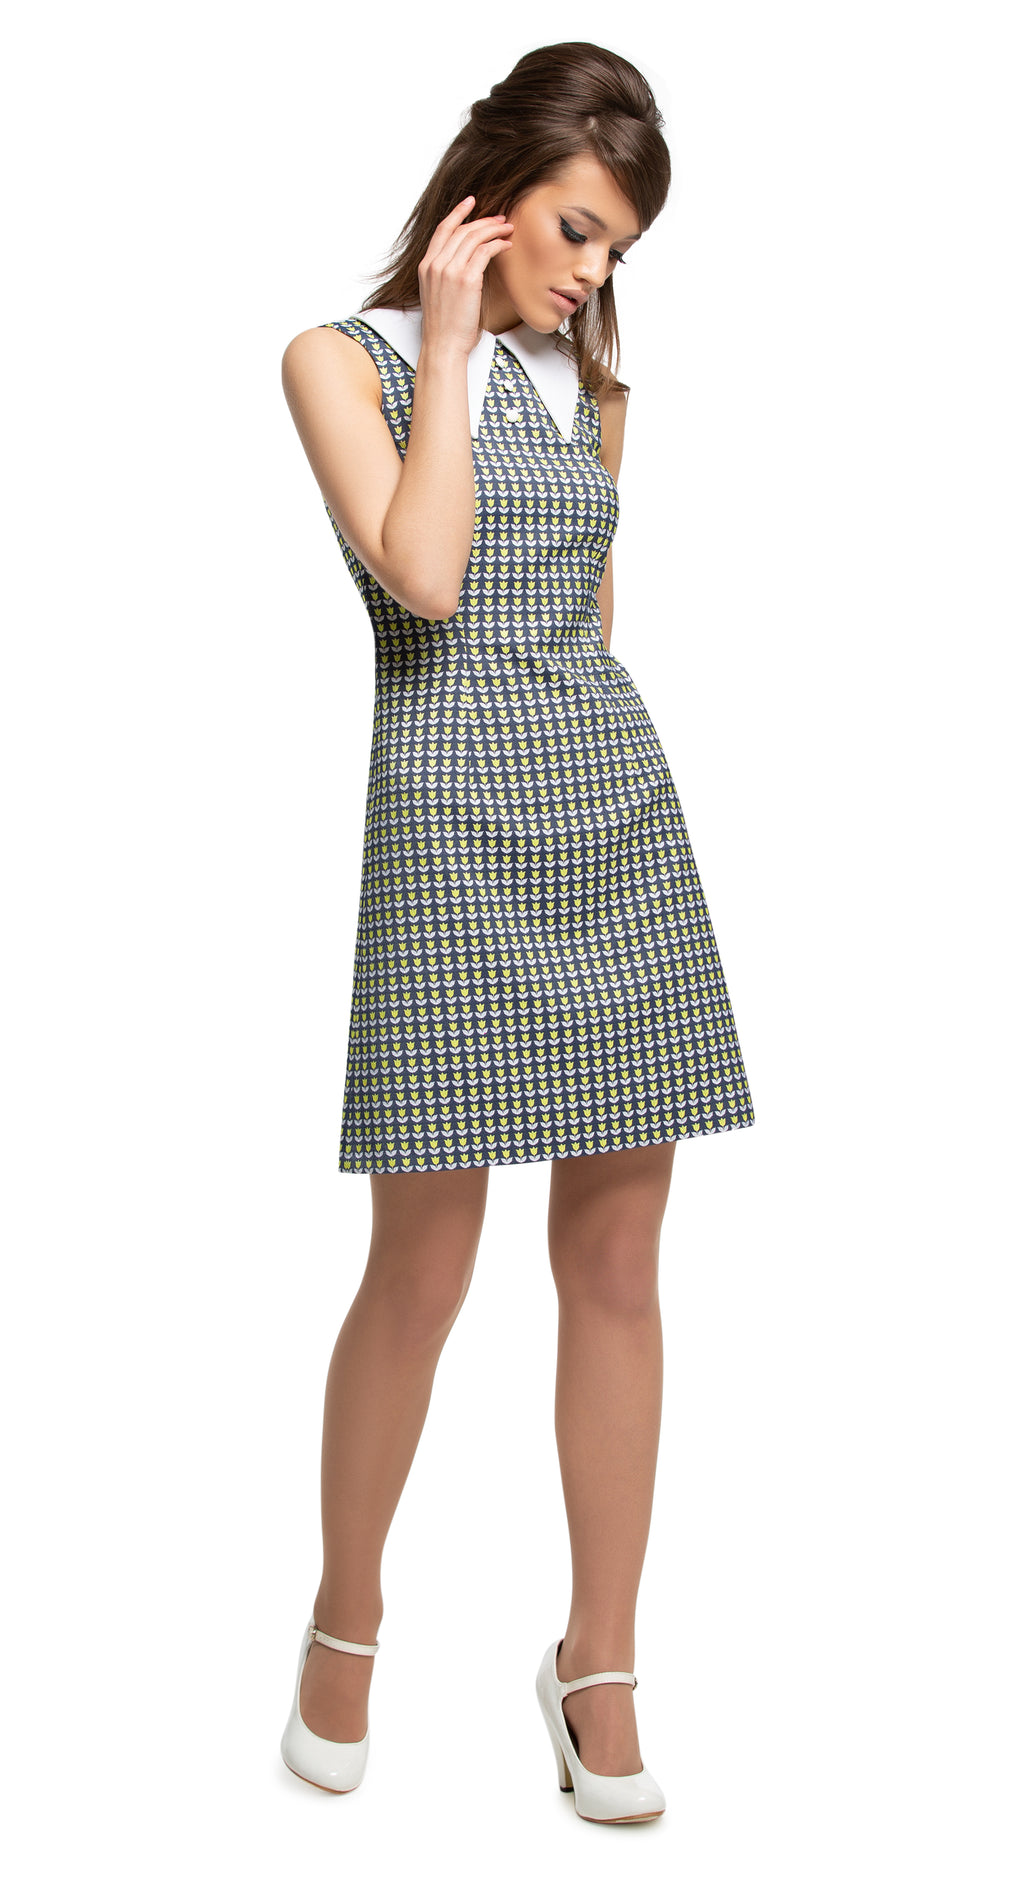 This mod, slightly a-line at-work or at-play Spring dress is made from a French weave tulip pattern, with a dramatic oversized pointed collar and three small button detailing. From office floor to dance floor, worn with casual flats or heels; it's a comfortable timeless style with an immediate flair by way of striking fabric and pin-sharp craftsmanship.  Choose bespoke to alternate to a peter pan collar or add capped, quarter or mid length sleeves.